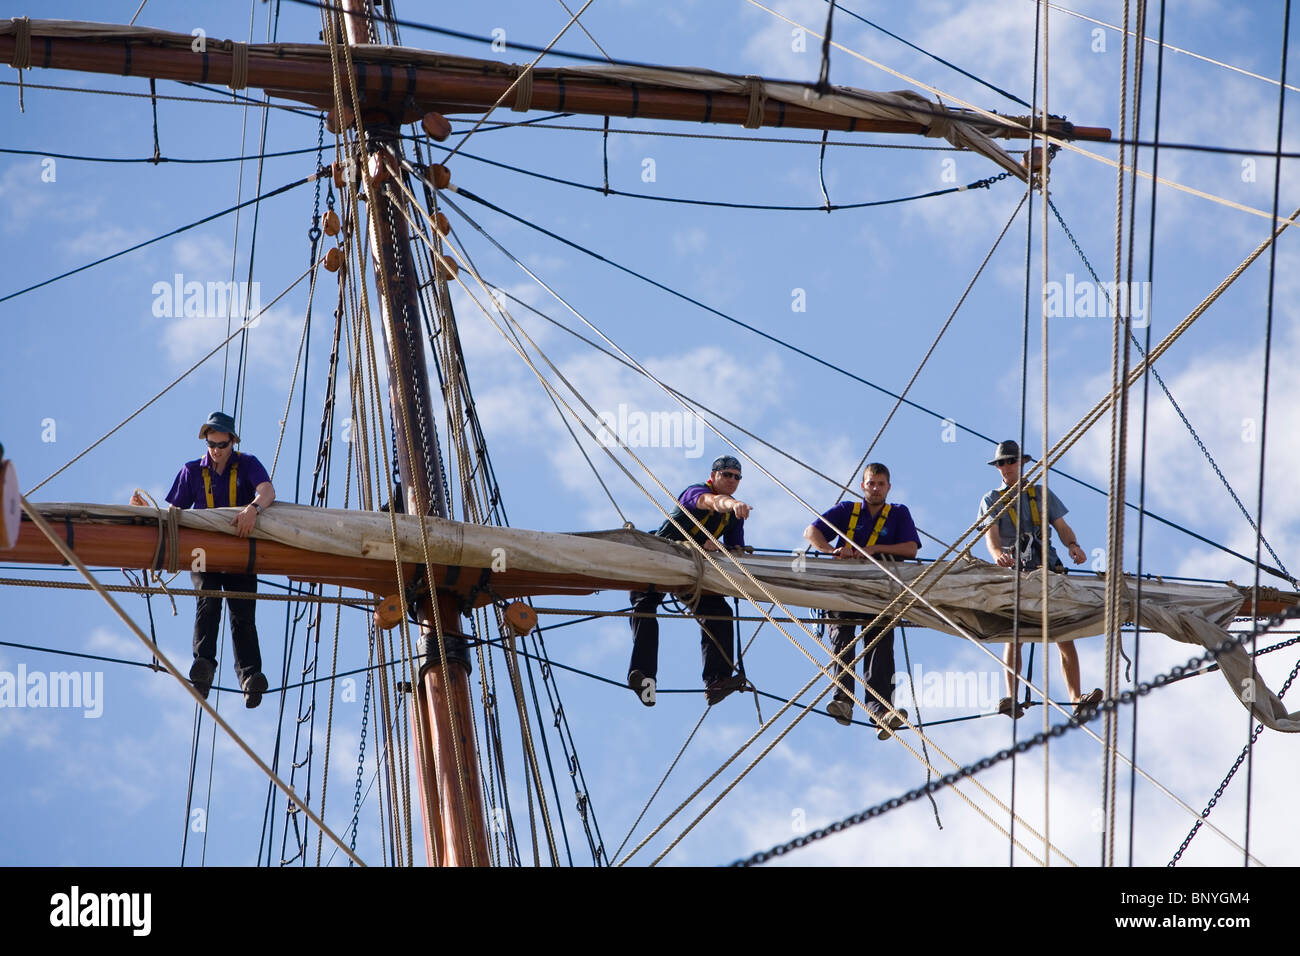 Sailors on the mast of a traditional sailing ship, during the Wooden Boat Festival.  Hobart, Tasmania, AUSTRALIA - Stock Image